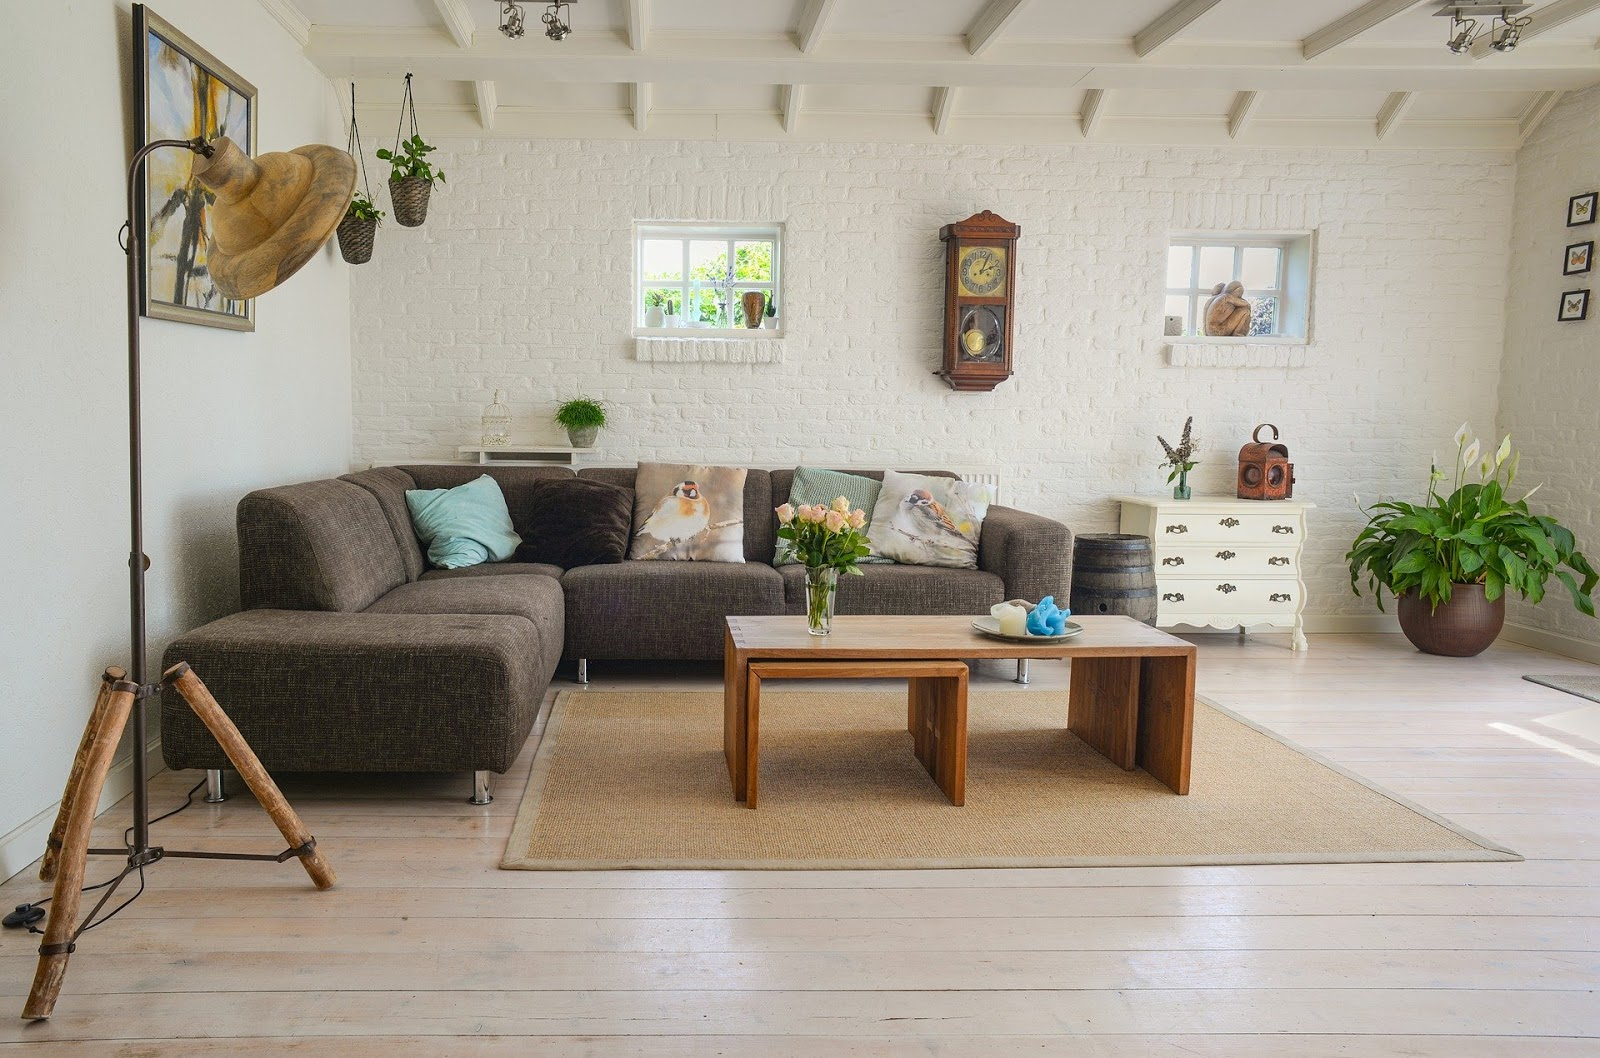 Ideas on How to Express Yourself at Home